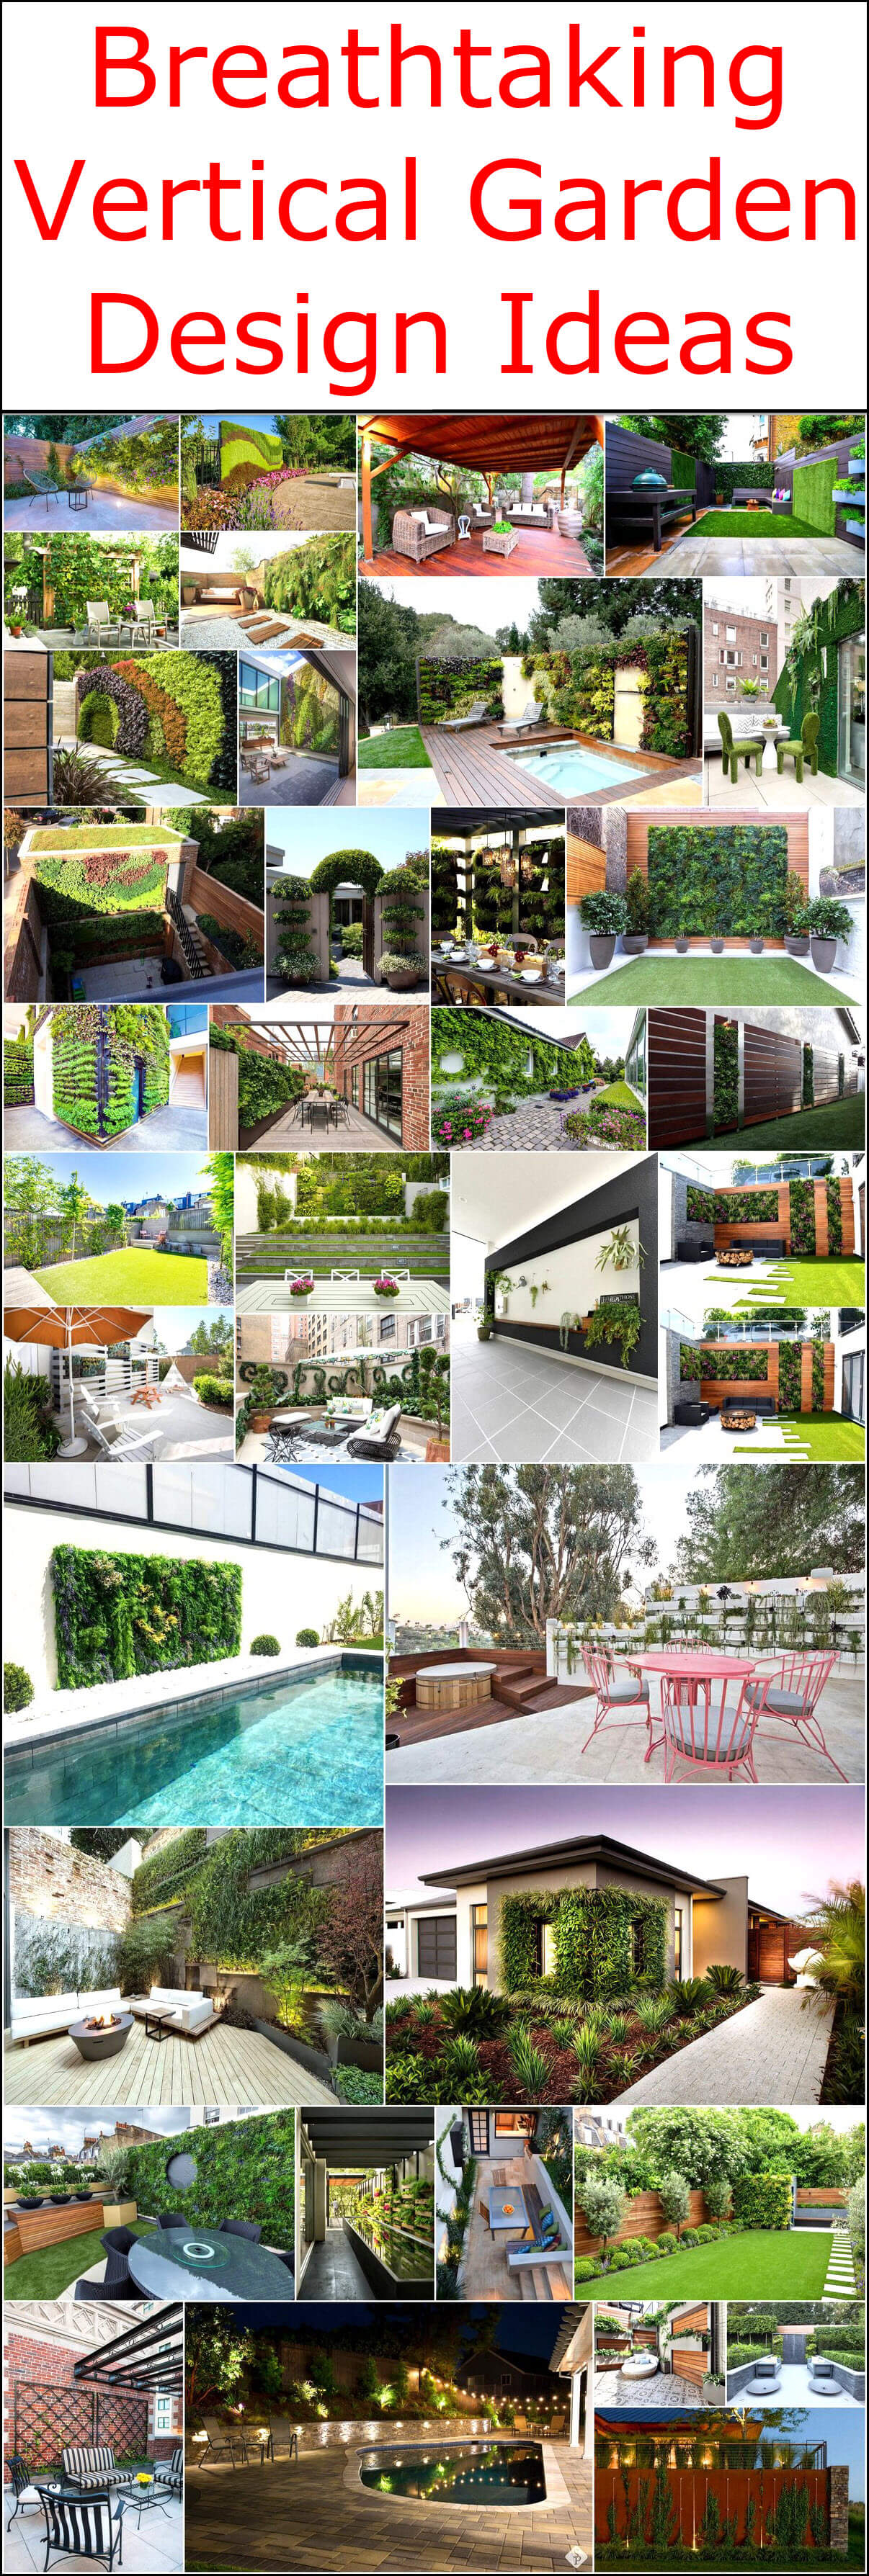 Breathtaking Vertical Garden Design Ideas